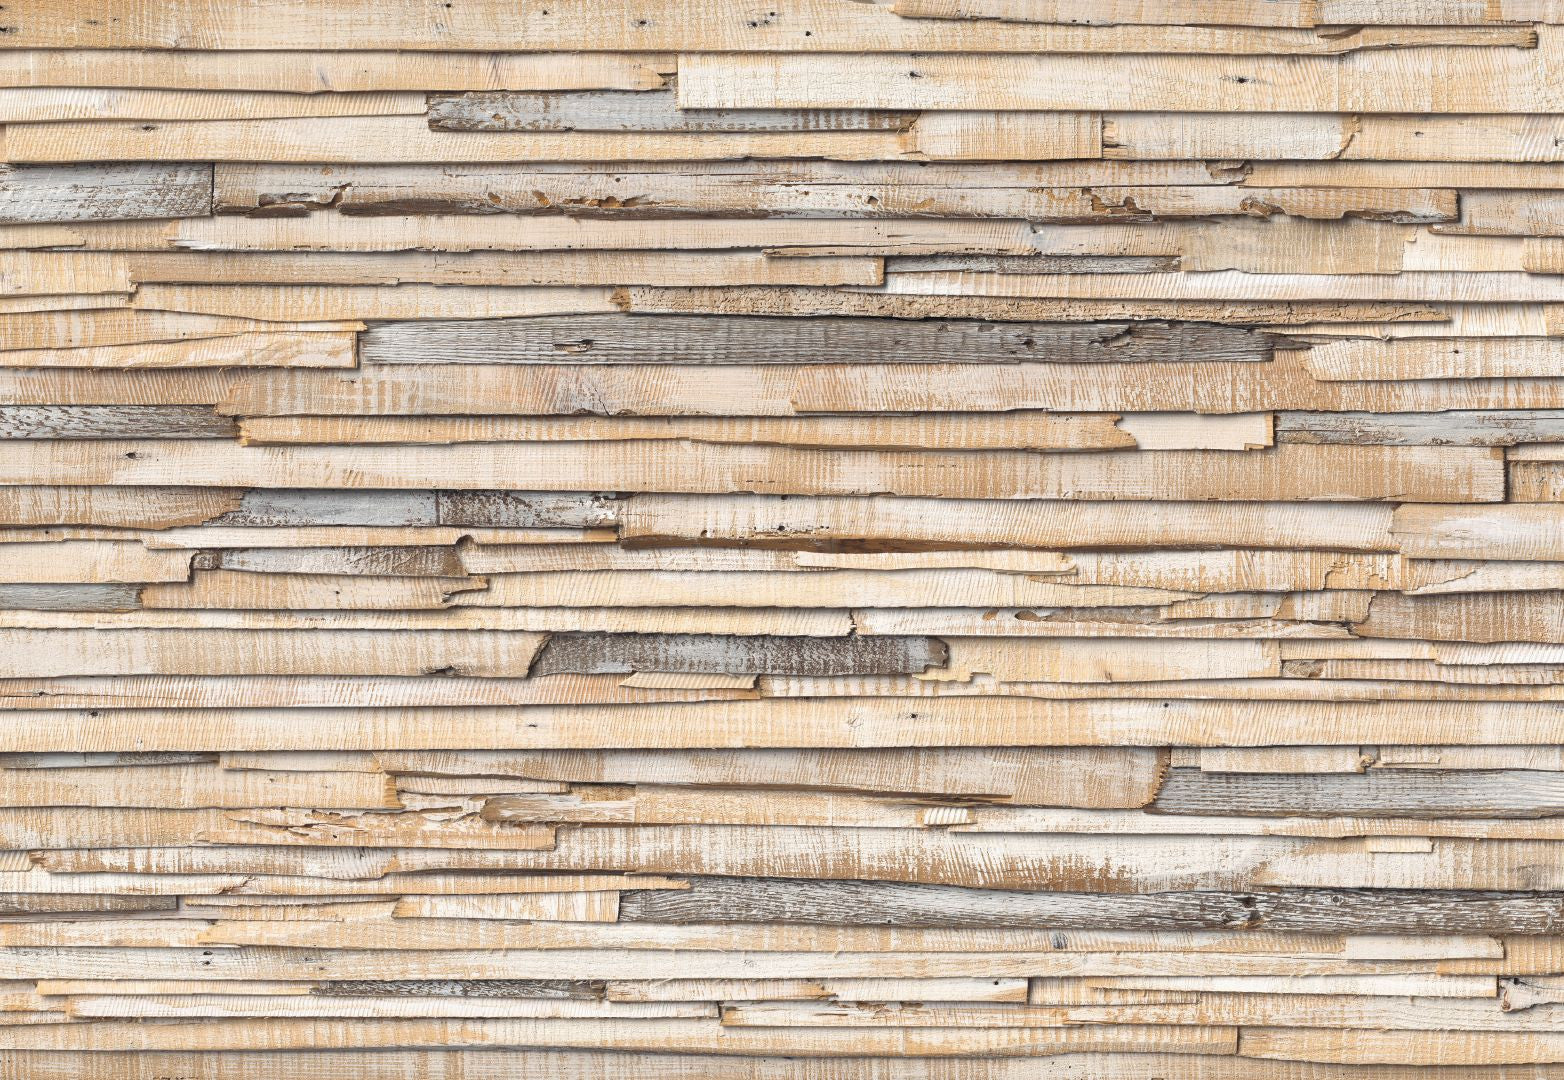 Whitewashed wood wall mural design by komar for brewster for Brewster wallcovering wood panels mural